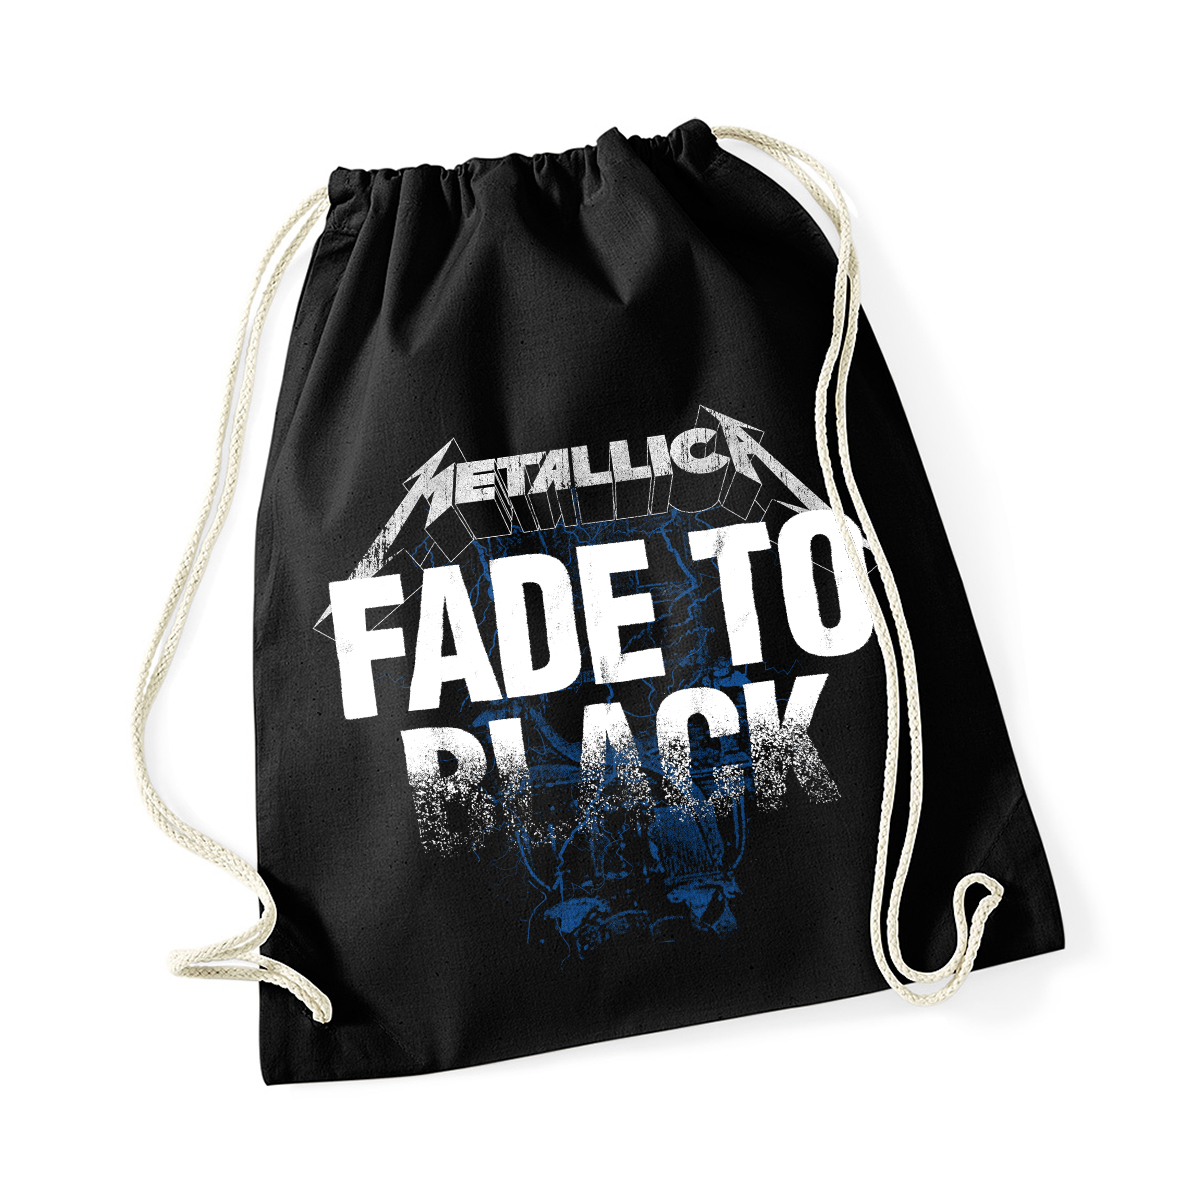 Fade to Black - Drawstring Black Bag - Metallica